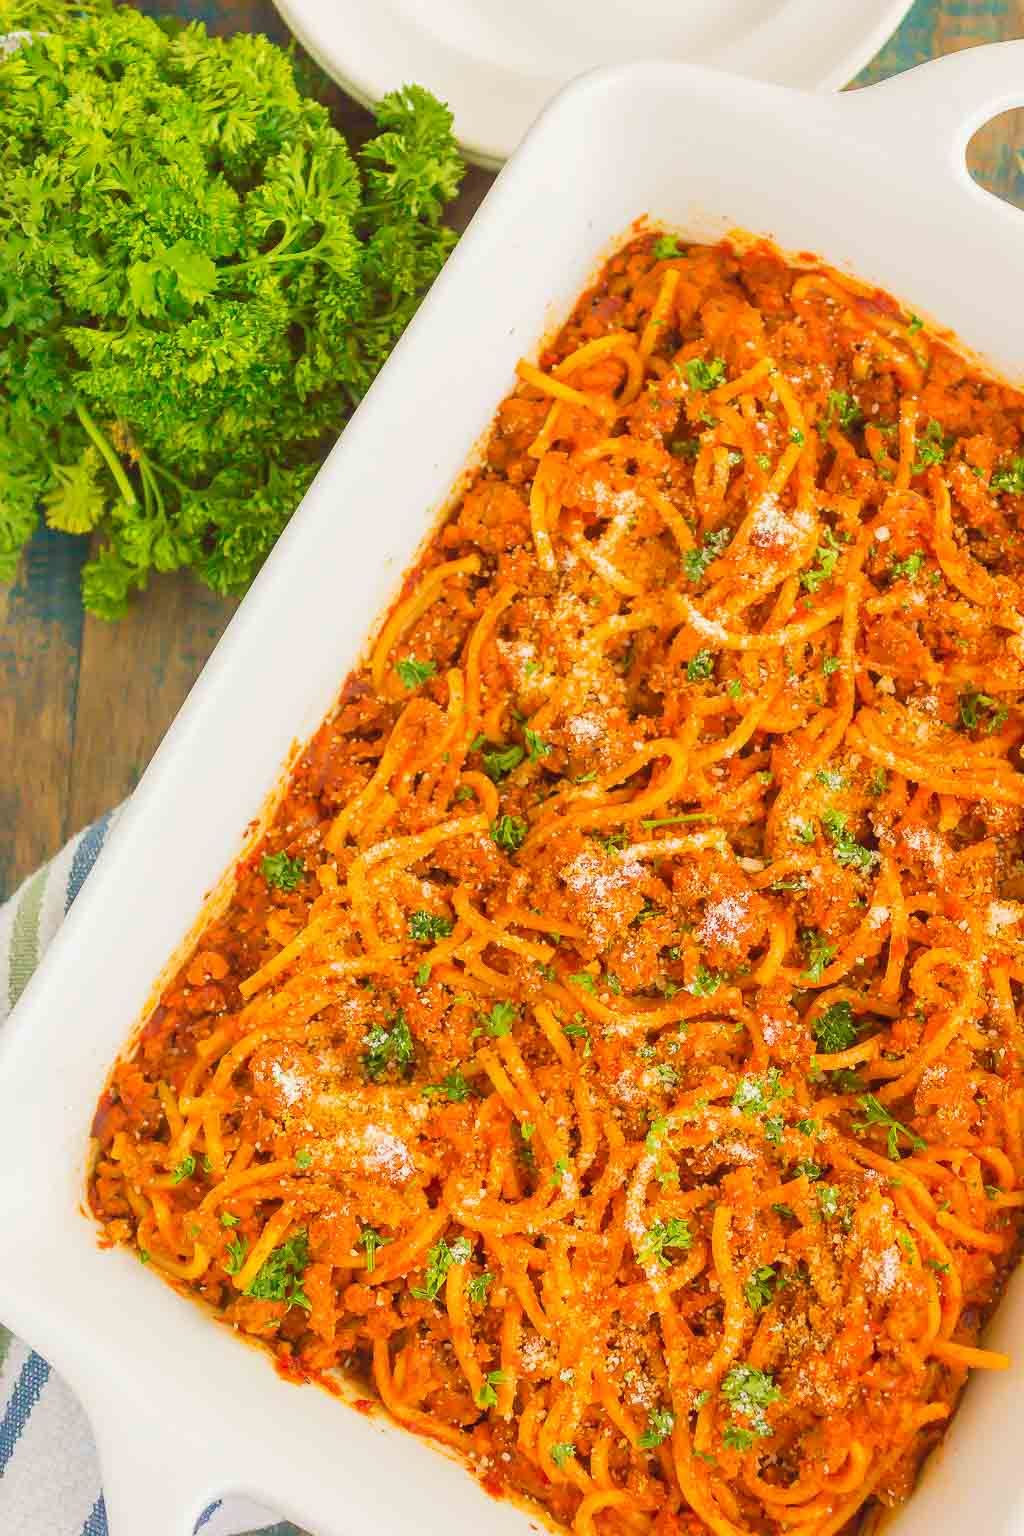 Easy Baked Spaghetti is a simple meal that's perfect for busy weeknights. With no need to boil the spaghetti and an easy meat sauce that's full of flavor, this hearty dish is the perfect comfort food!